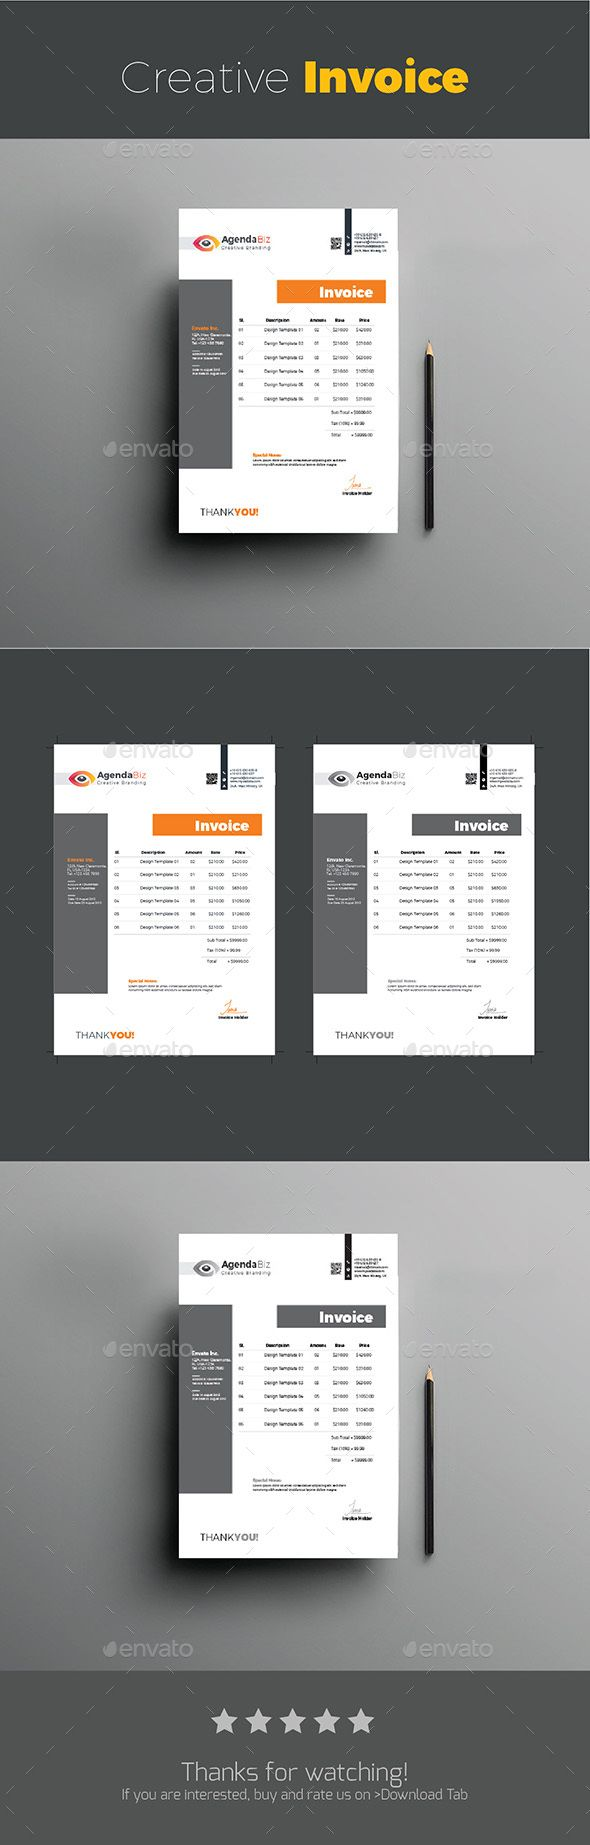 how to create a proposal template in word%0A Creative Invoice  Proposals  u      Invoices  Stationery